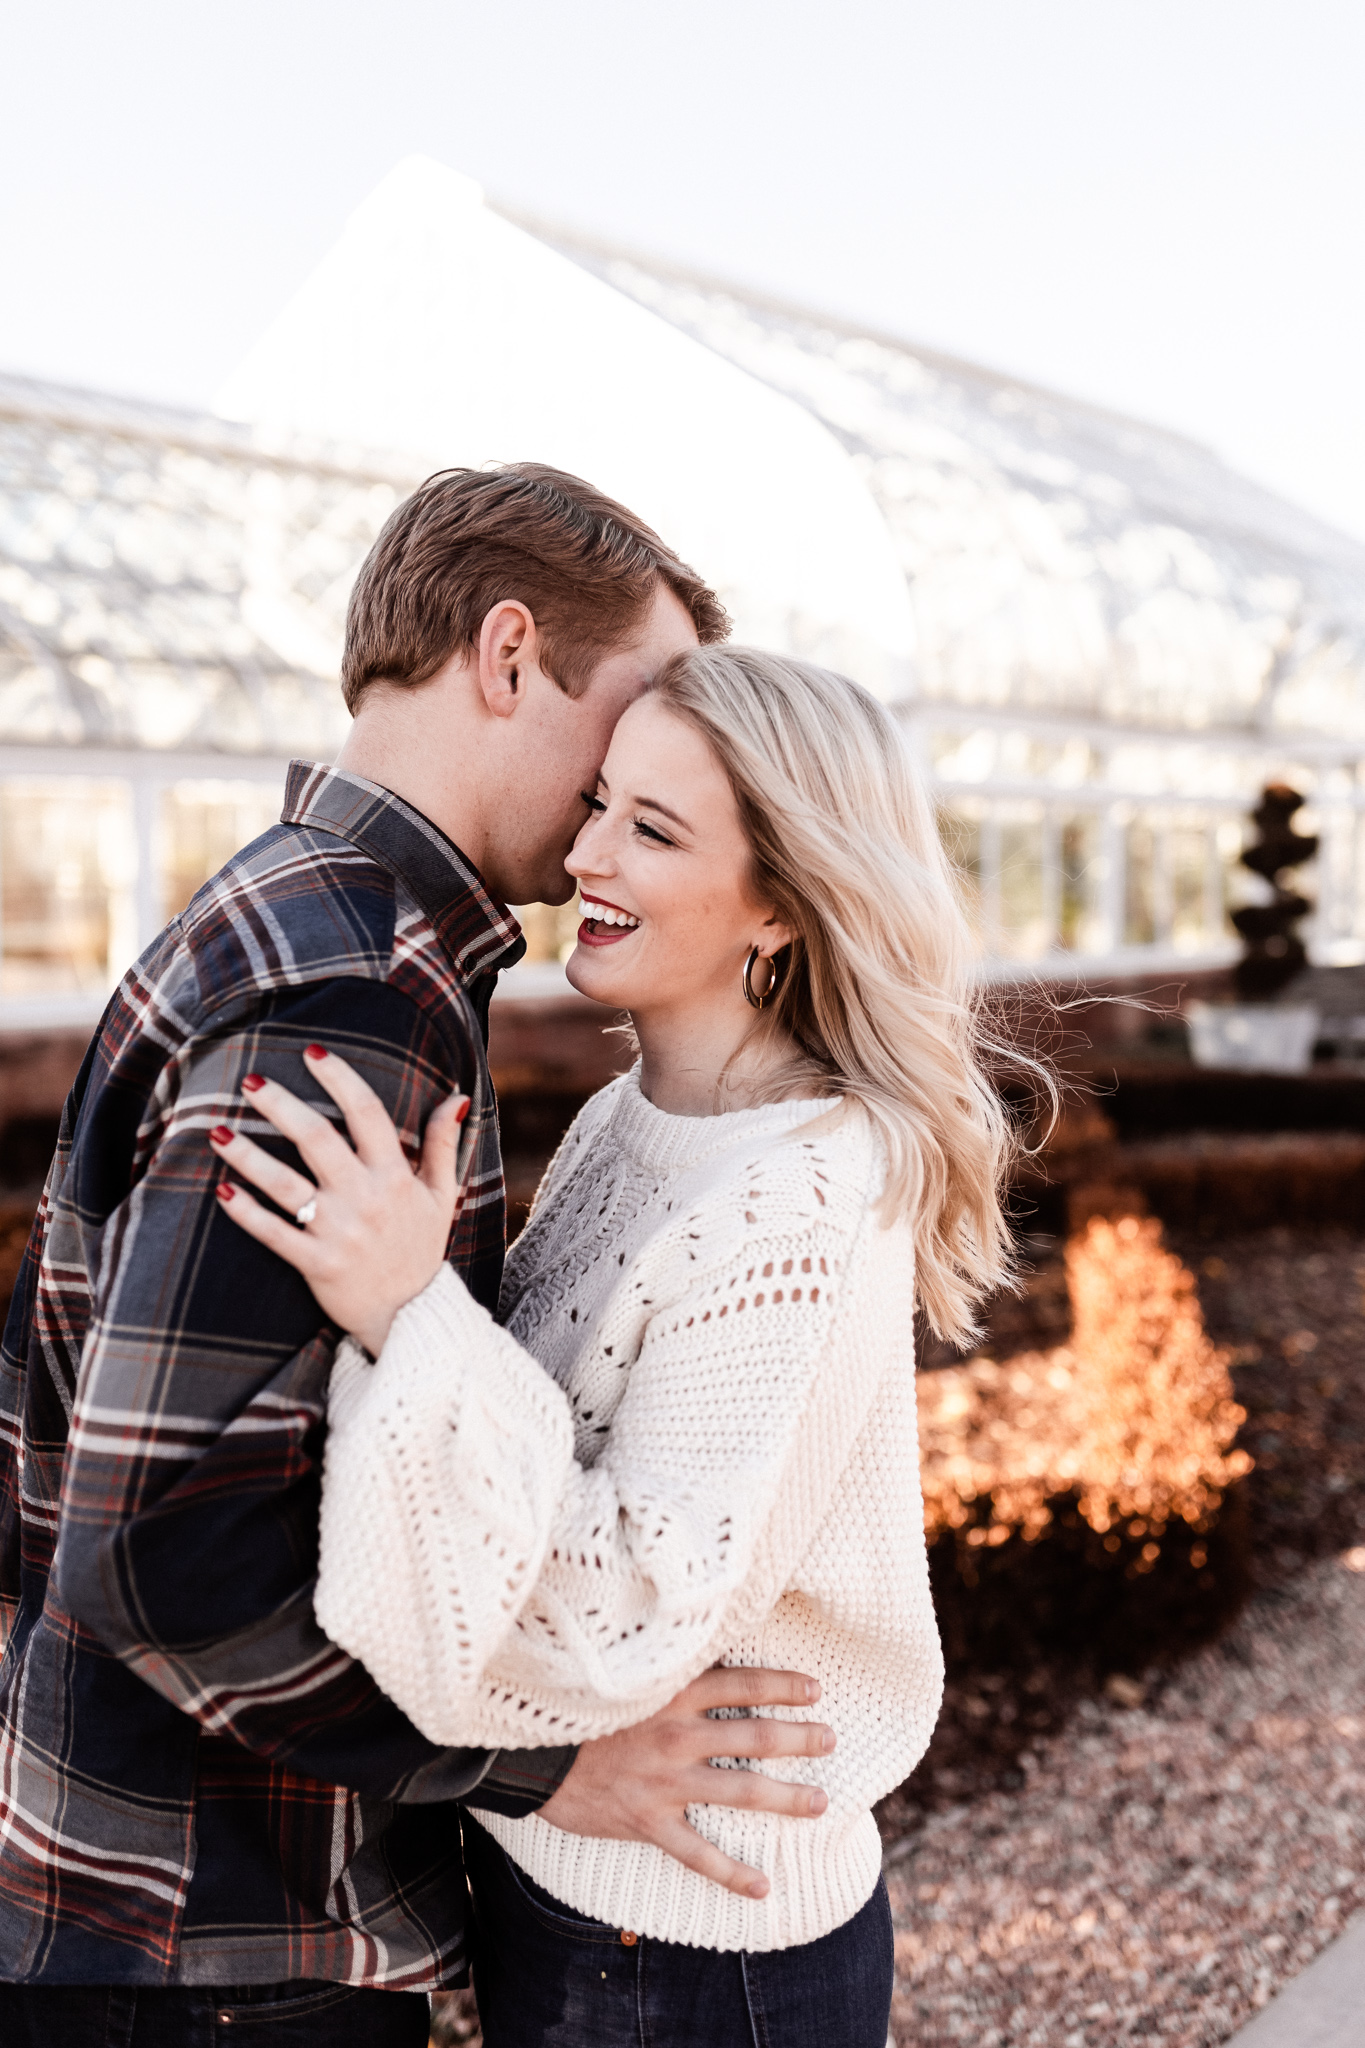 Foster + Alexa | Spring Garden Engagements | Oklahoma Wedding Photographer-5.jpg